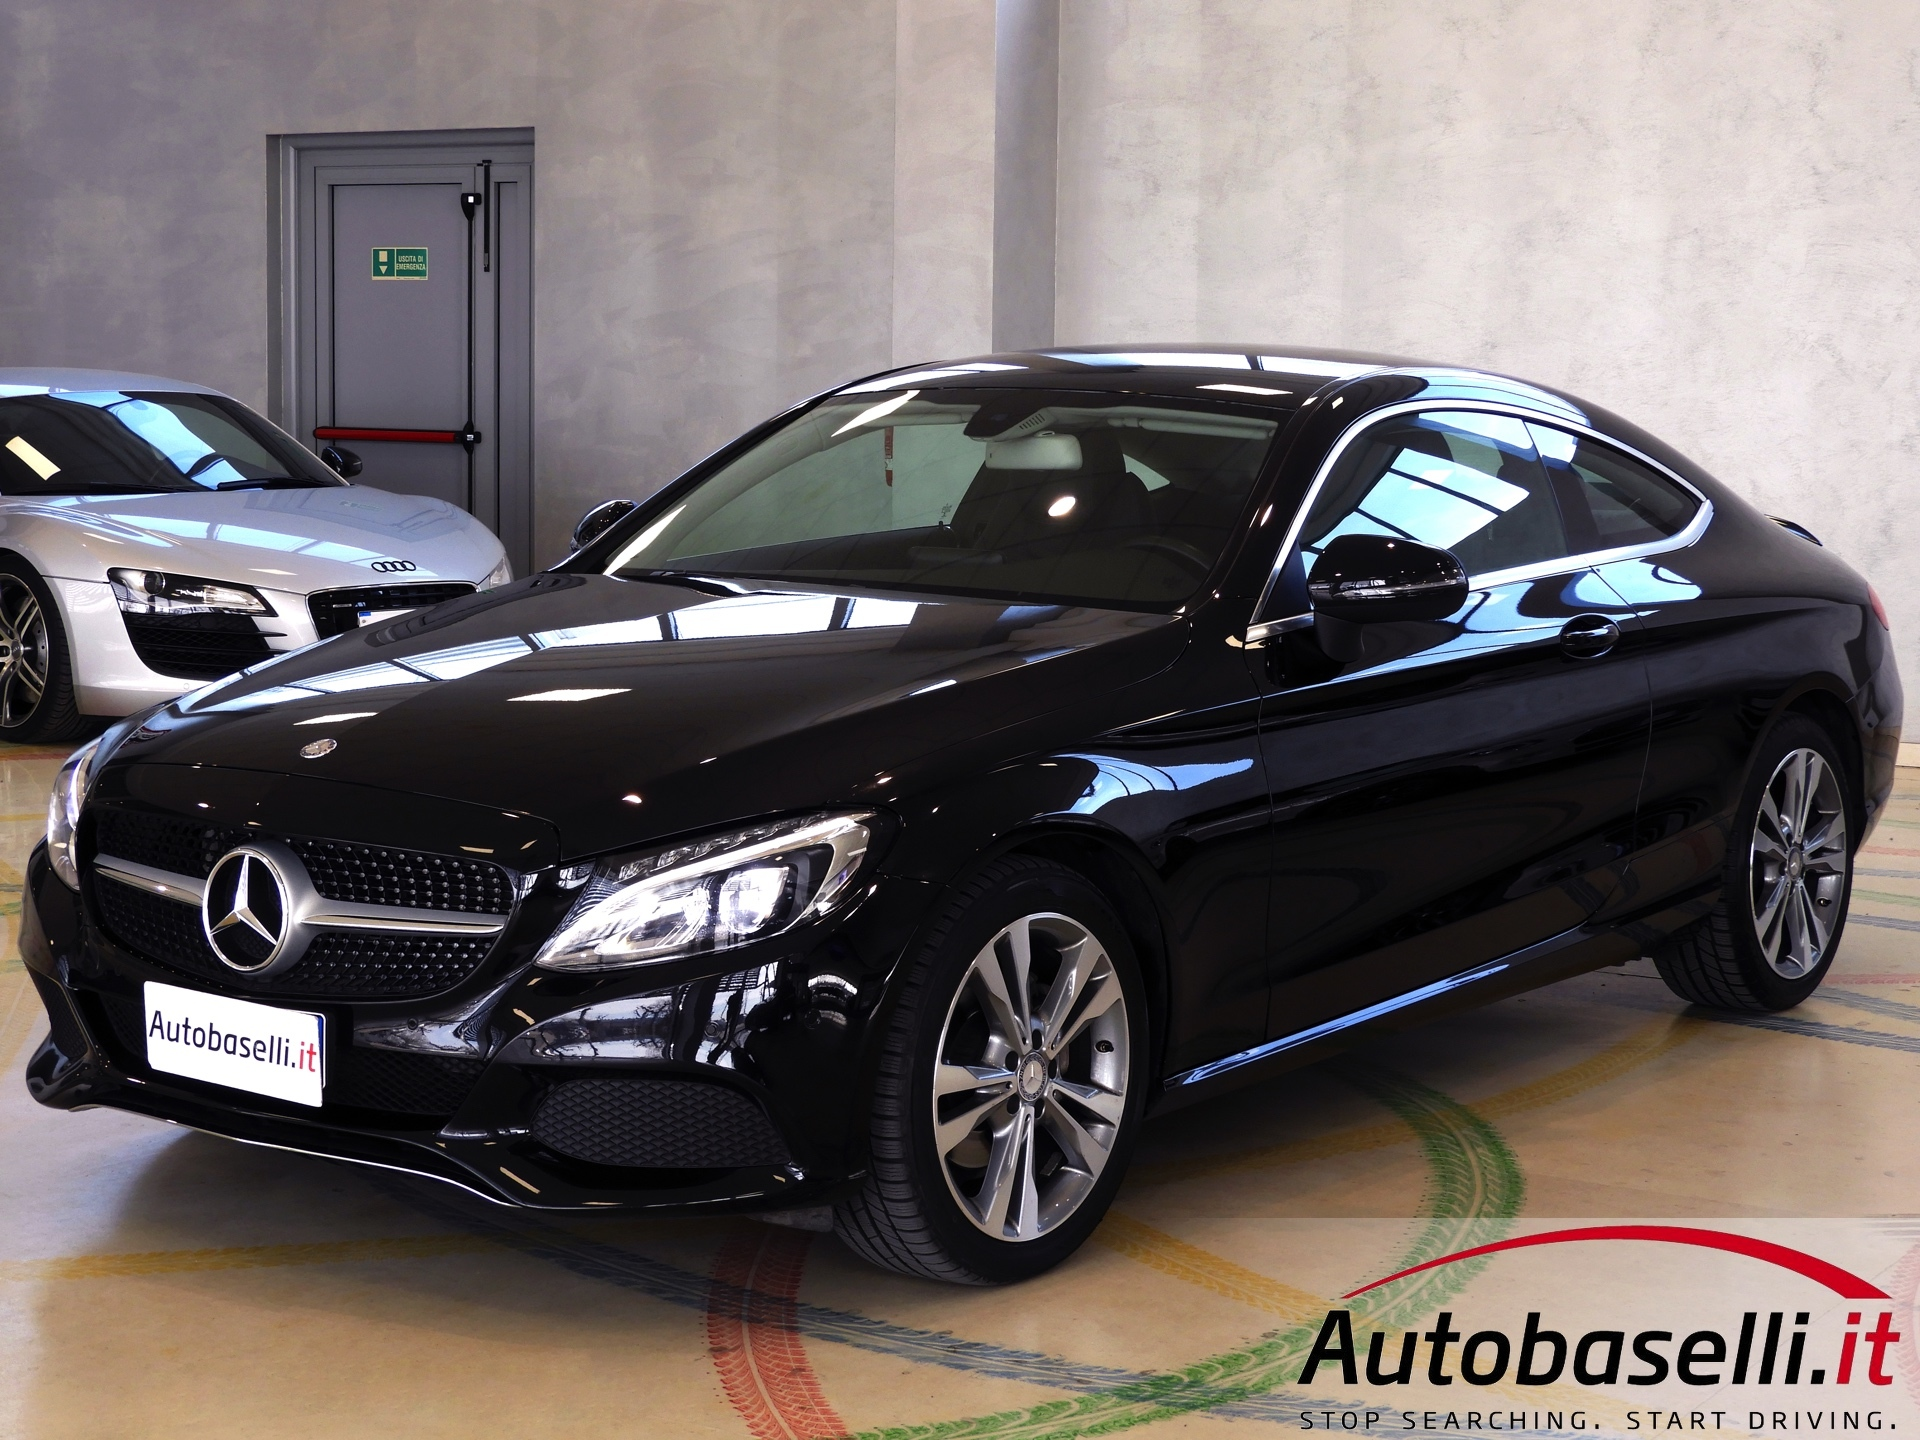 Mercedes C220 D Coupe Sport Automatica Autobaselli It